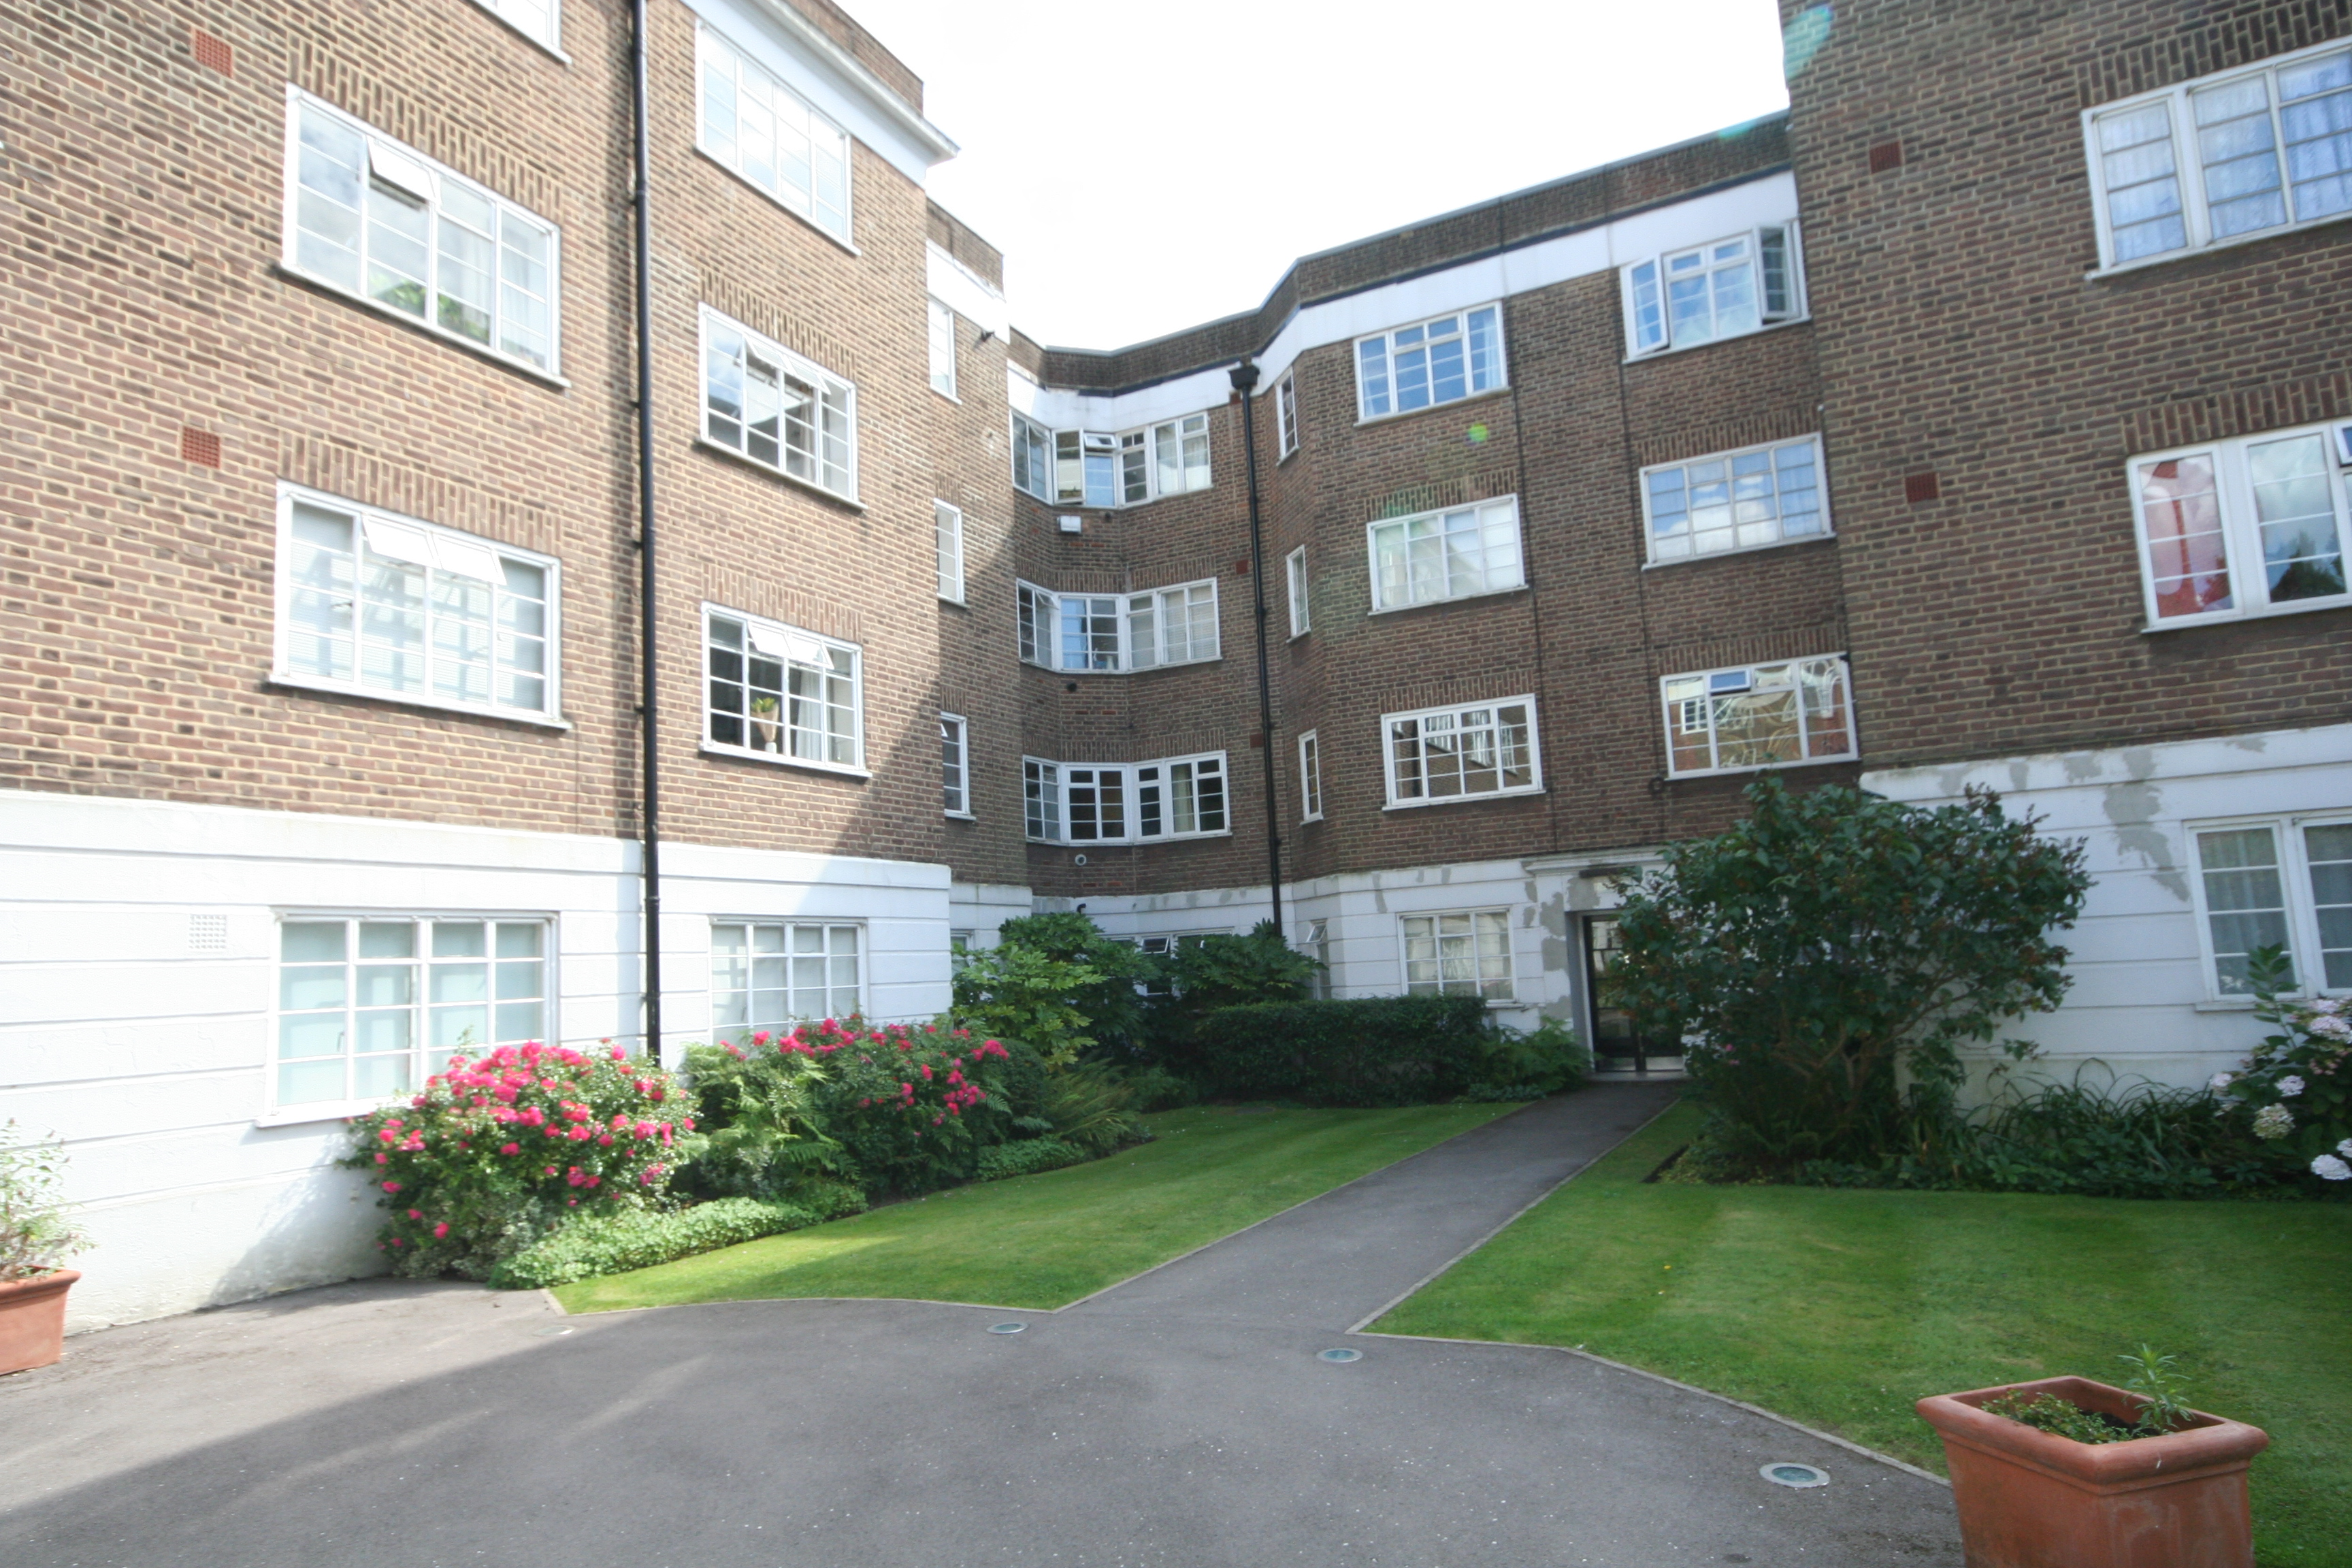 DARTMOUTH COURT, SE10 8AT